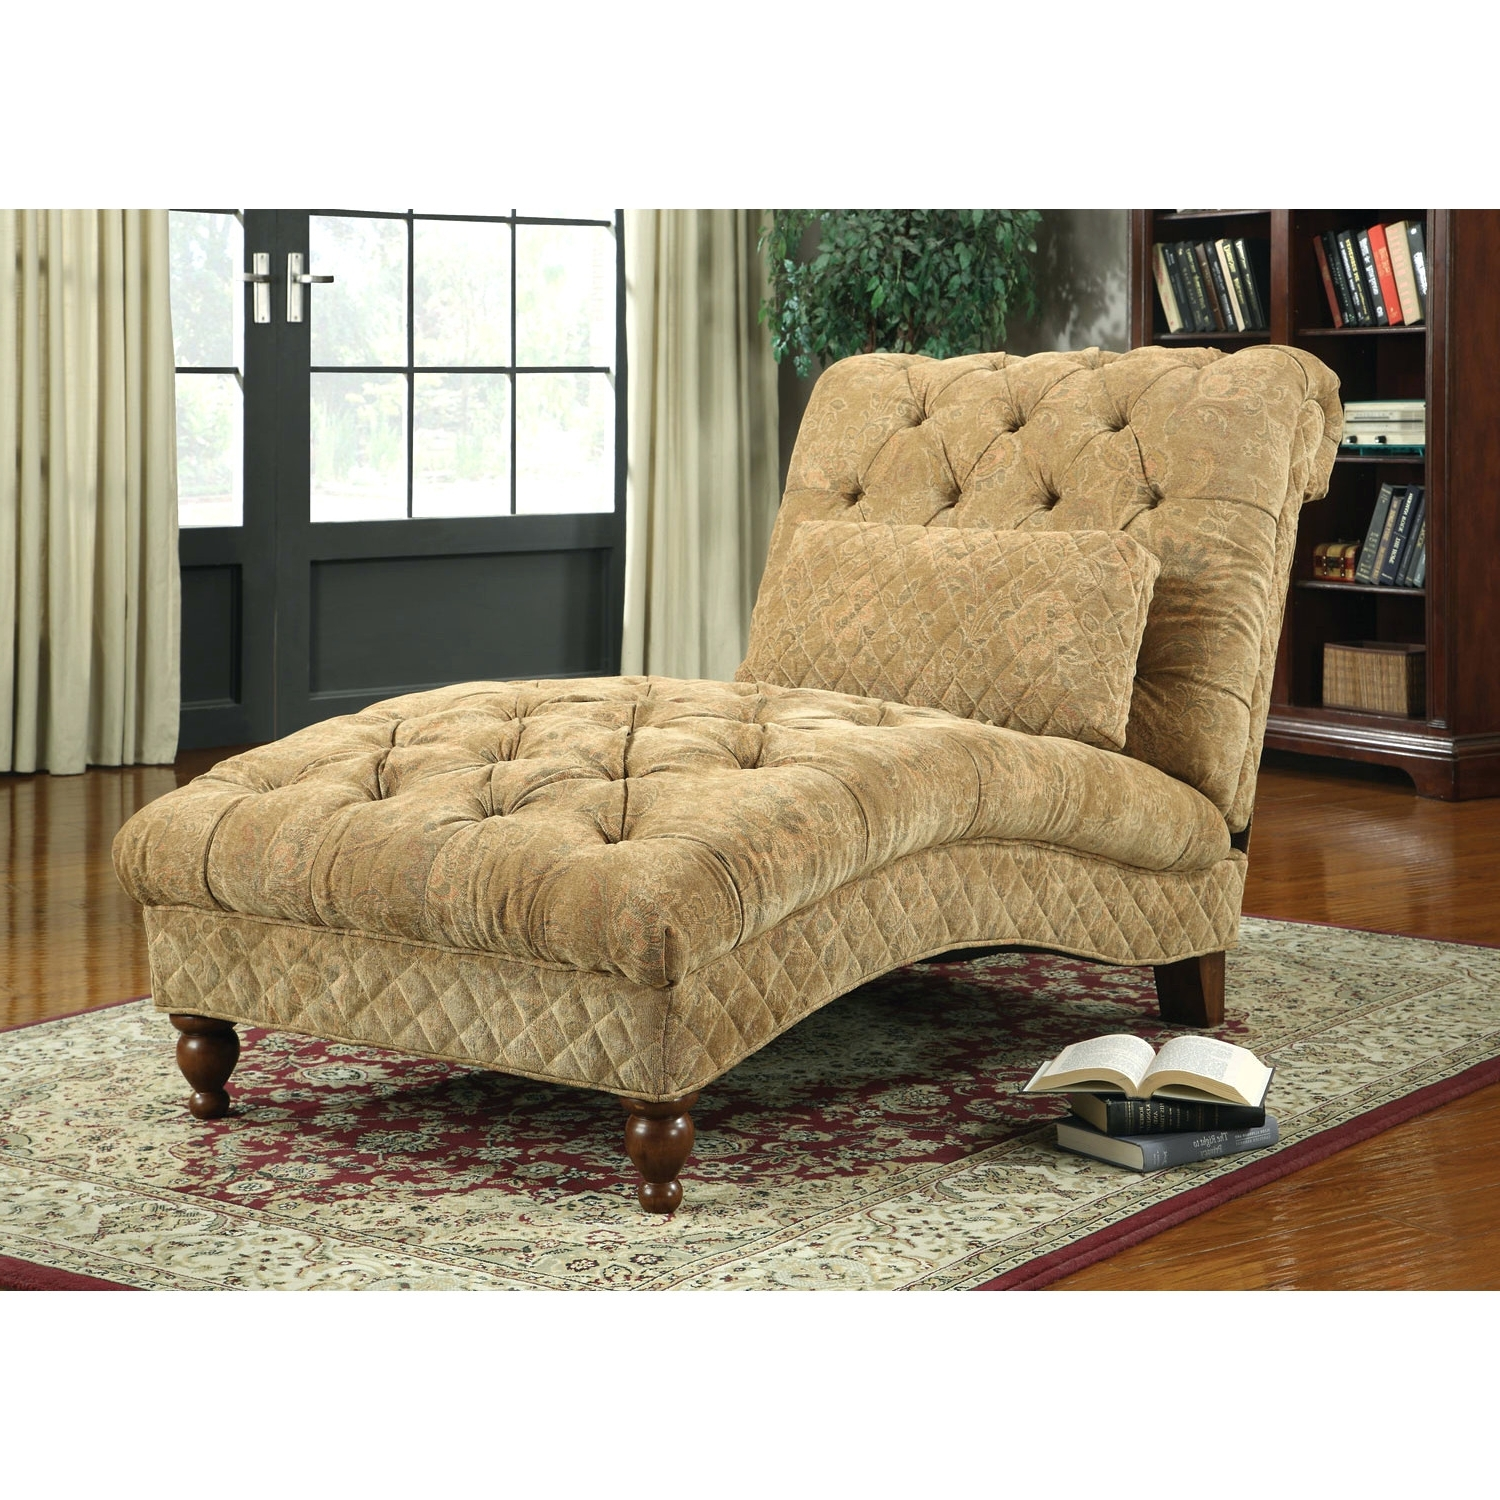 Chaise Lounge Chairs For Two With Favorite Ideas Collection Two Person Chaise About 2 Person Chaise Lounge (View 7 of 15)